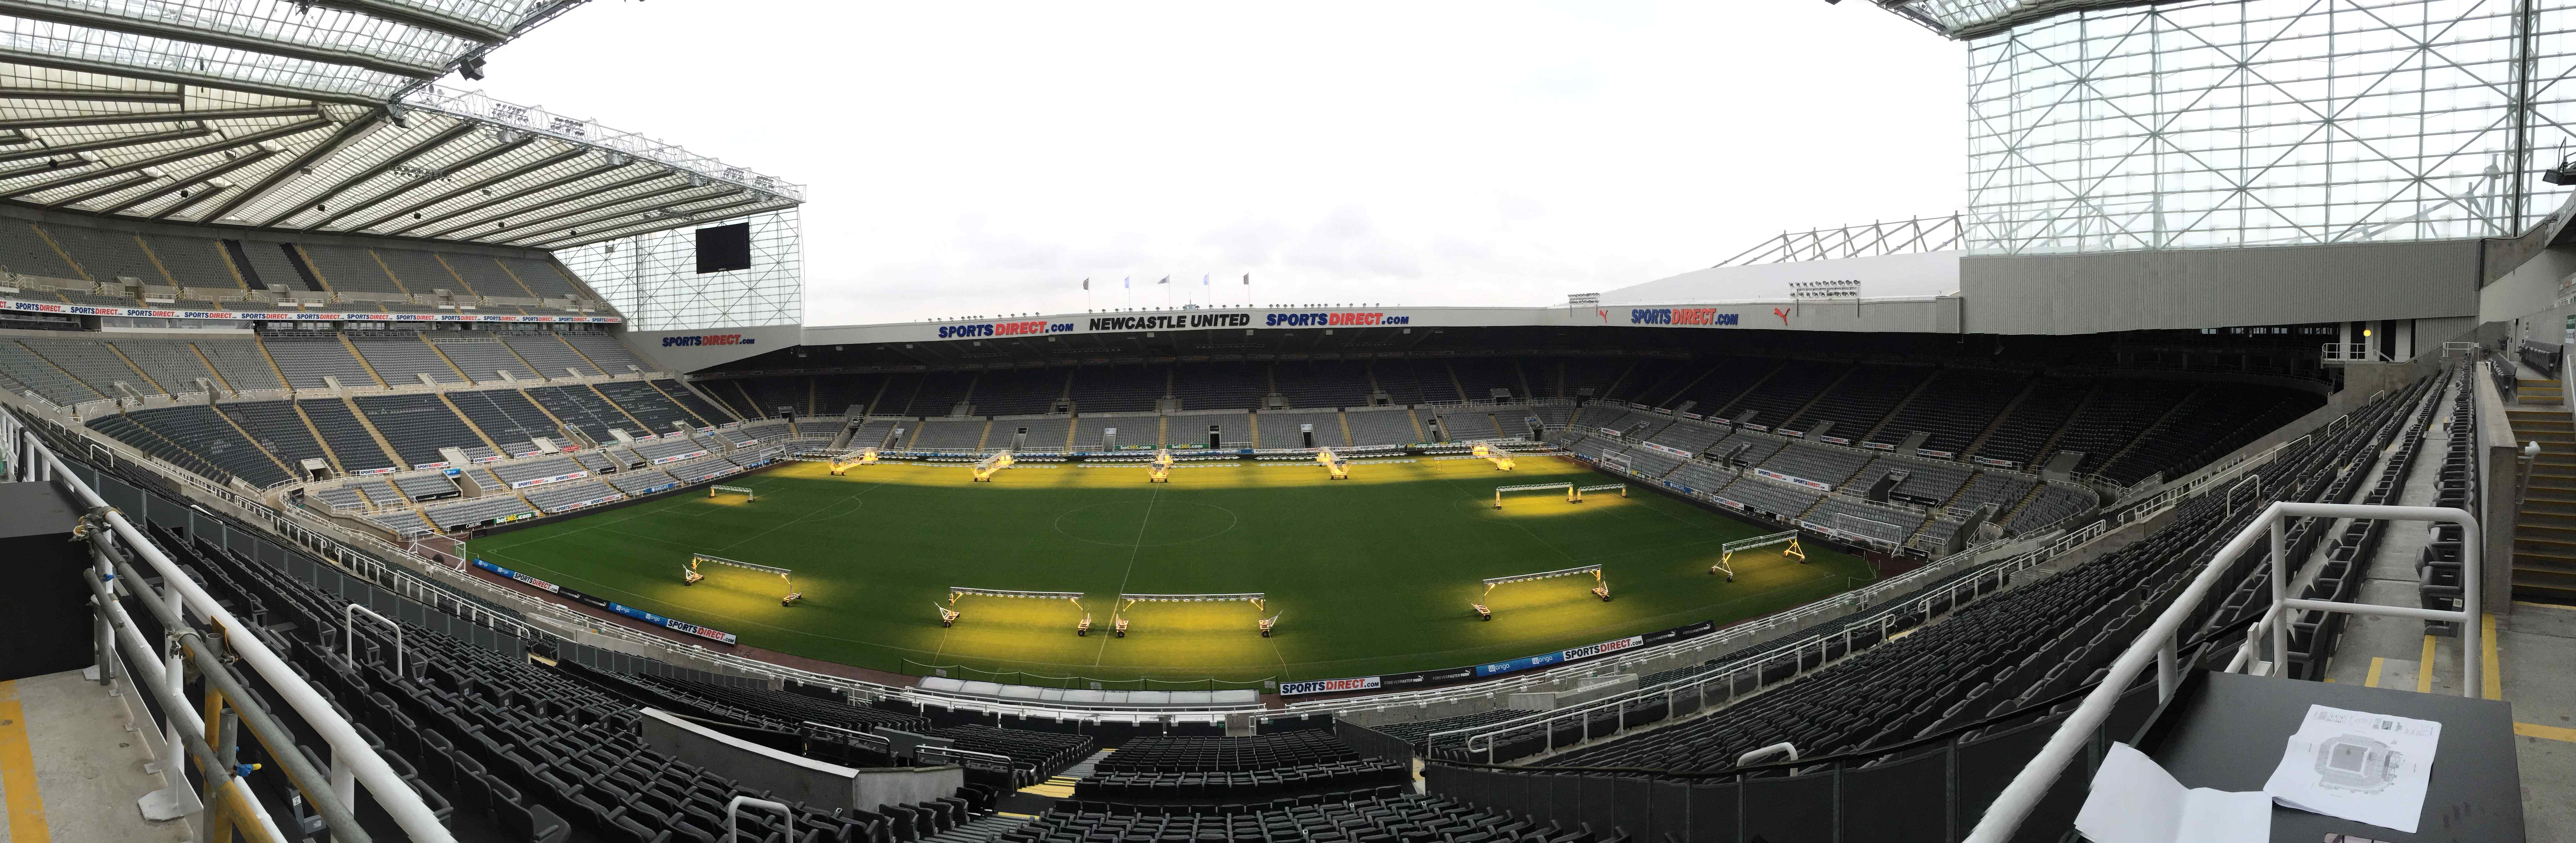 In Seventh Heaven surveying St James' Park, home of NUFC